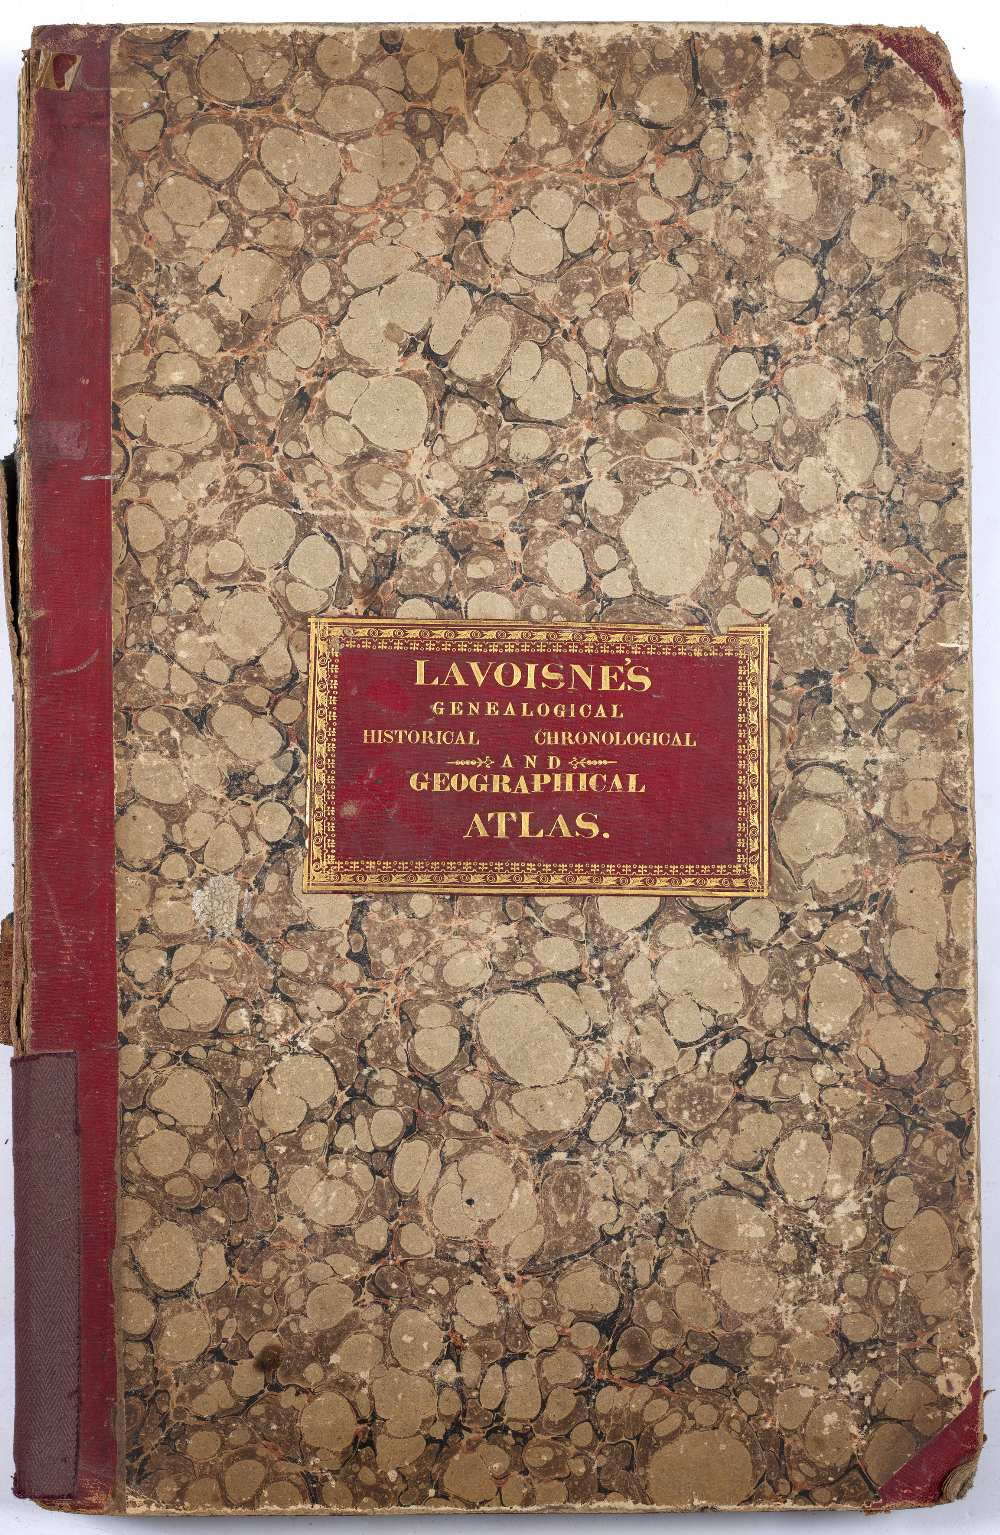 LAVOISNE, C.V. Lavoisne's Complete Genealogical, Historical, Chronological and Geographical Atlas.